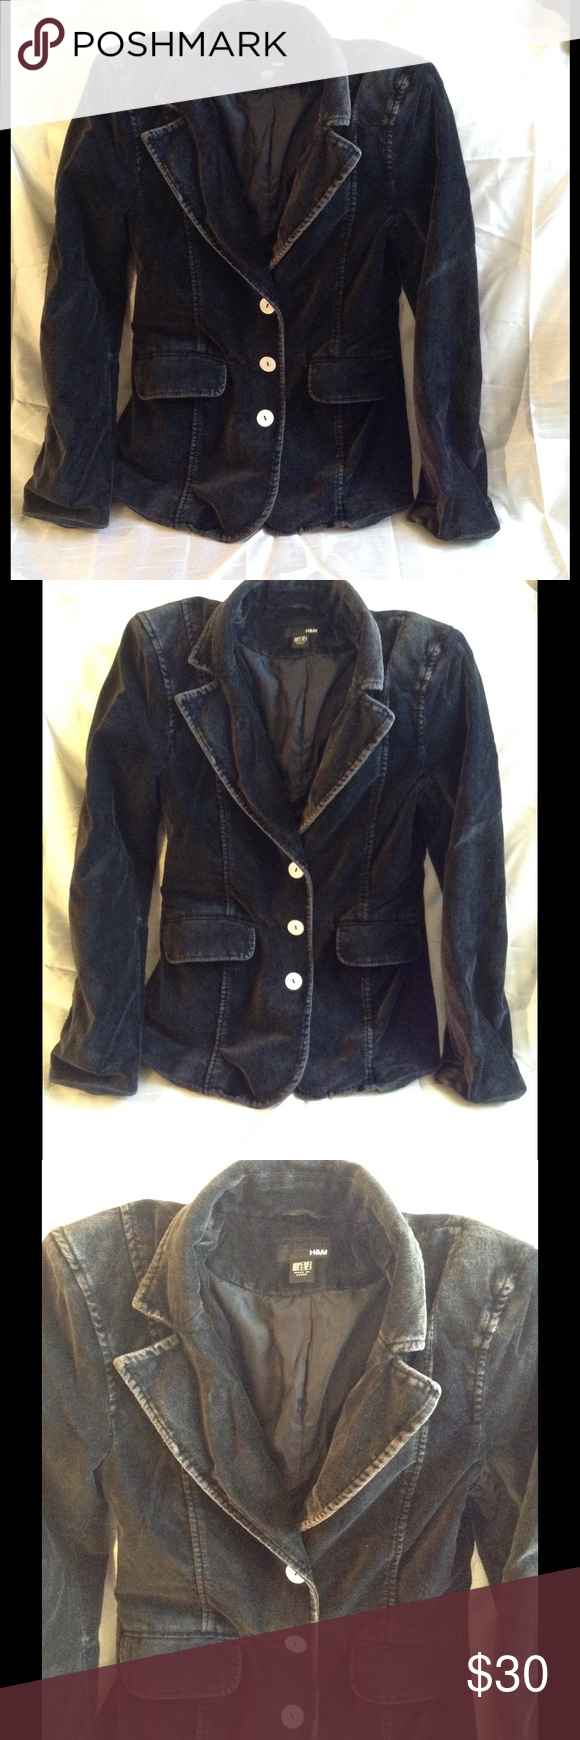 H&M black/grey velvet women's blazer jacket Women's H&M black/grayish velvet blazer jacket in a size US 6. In great condition. Have worn a few times but no longer fits. H&M Jackets & Coats Blazers